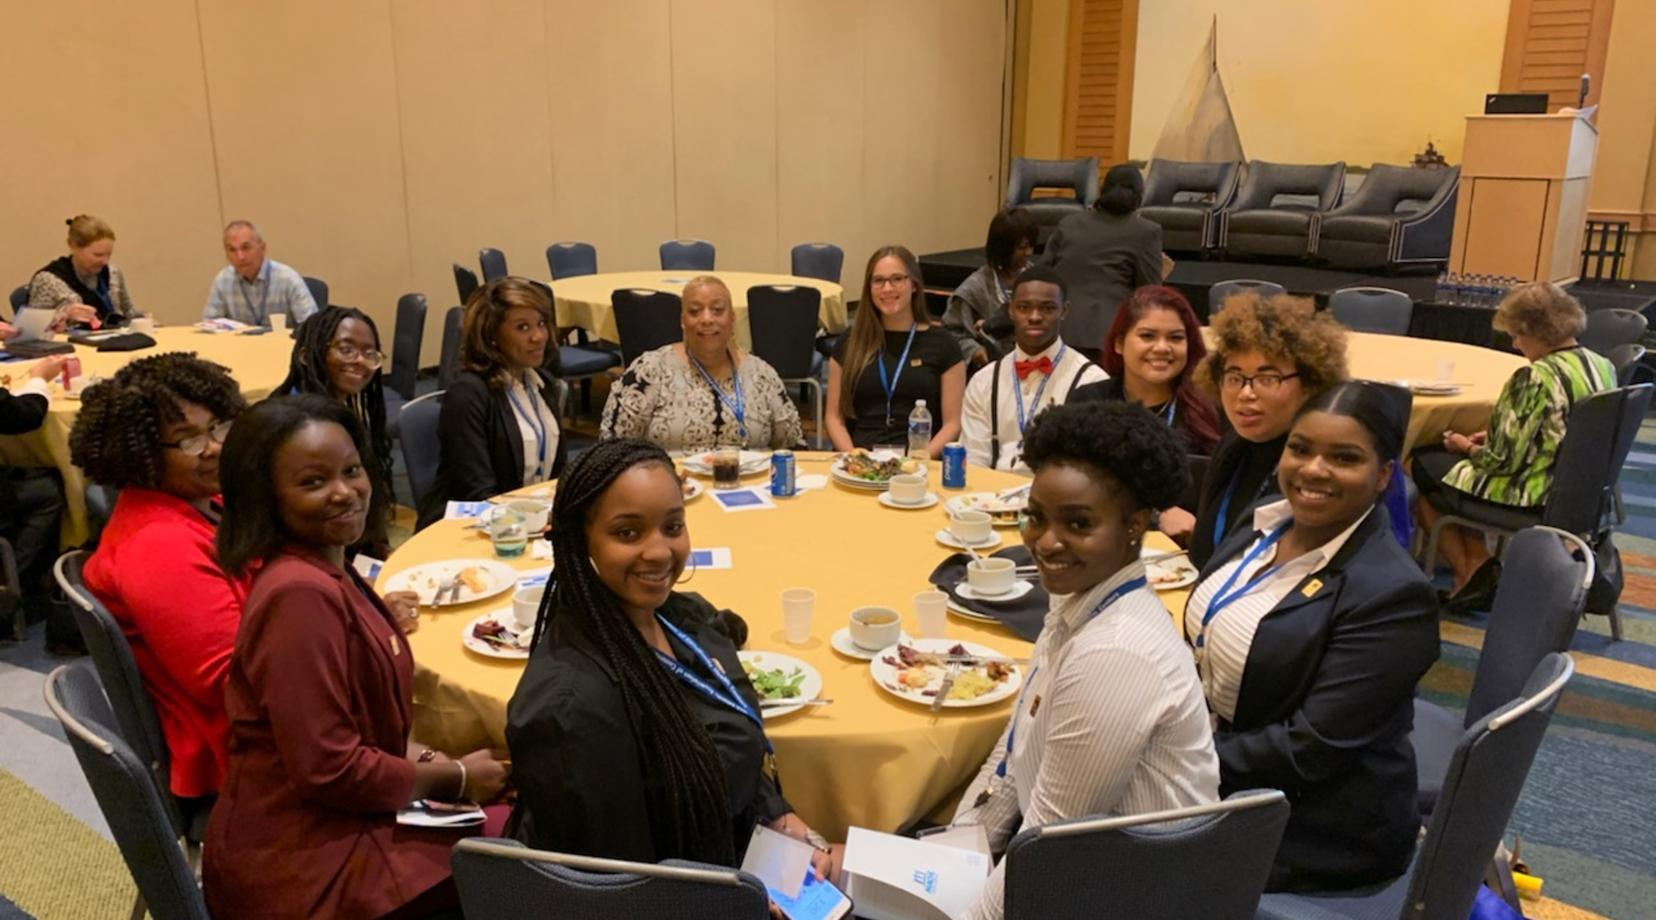 <p>A group of Delaware State University students attended the One Voice Together Conference held for community health professionals on Sept. 30 in Chesapeake, Md.</p>